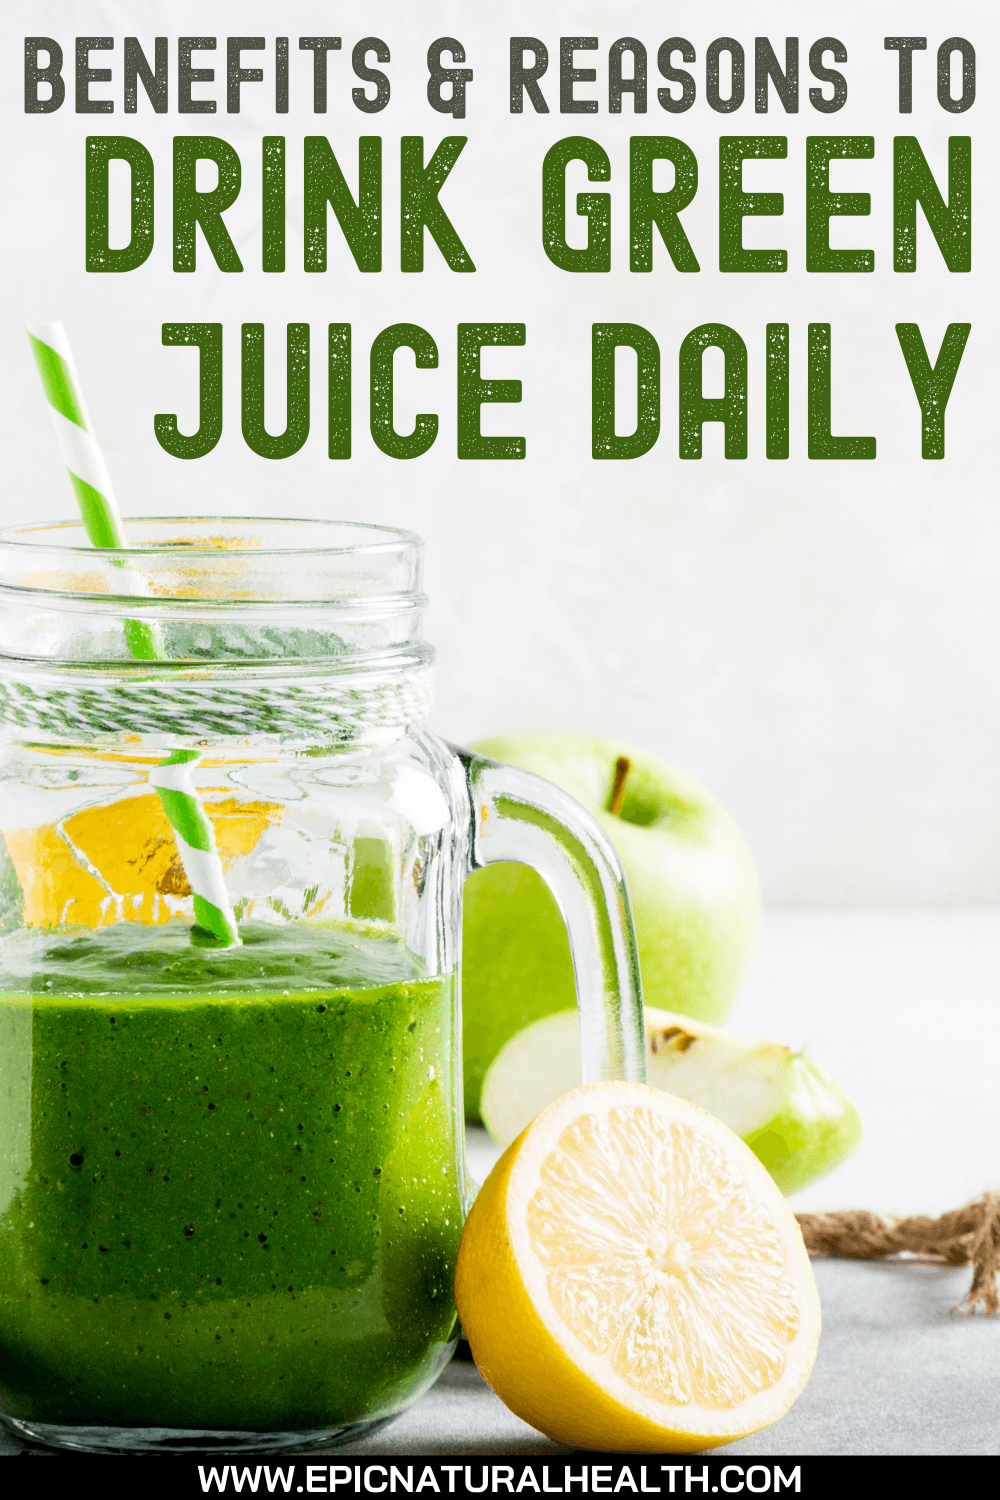 Benefits and Reasons to Drink Green Juice Daily